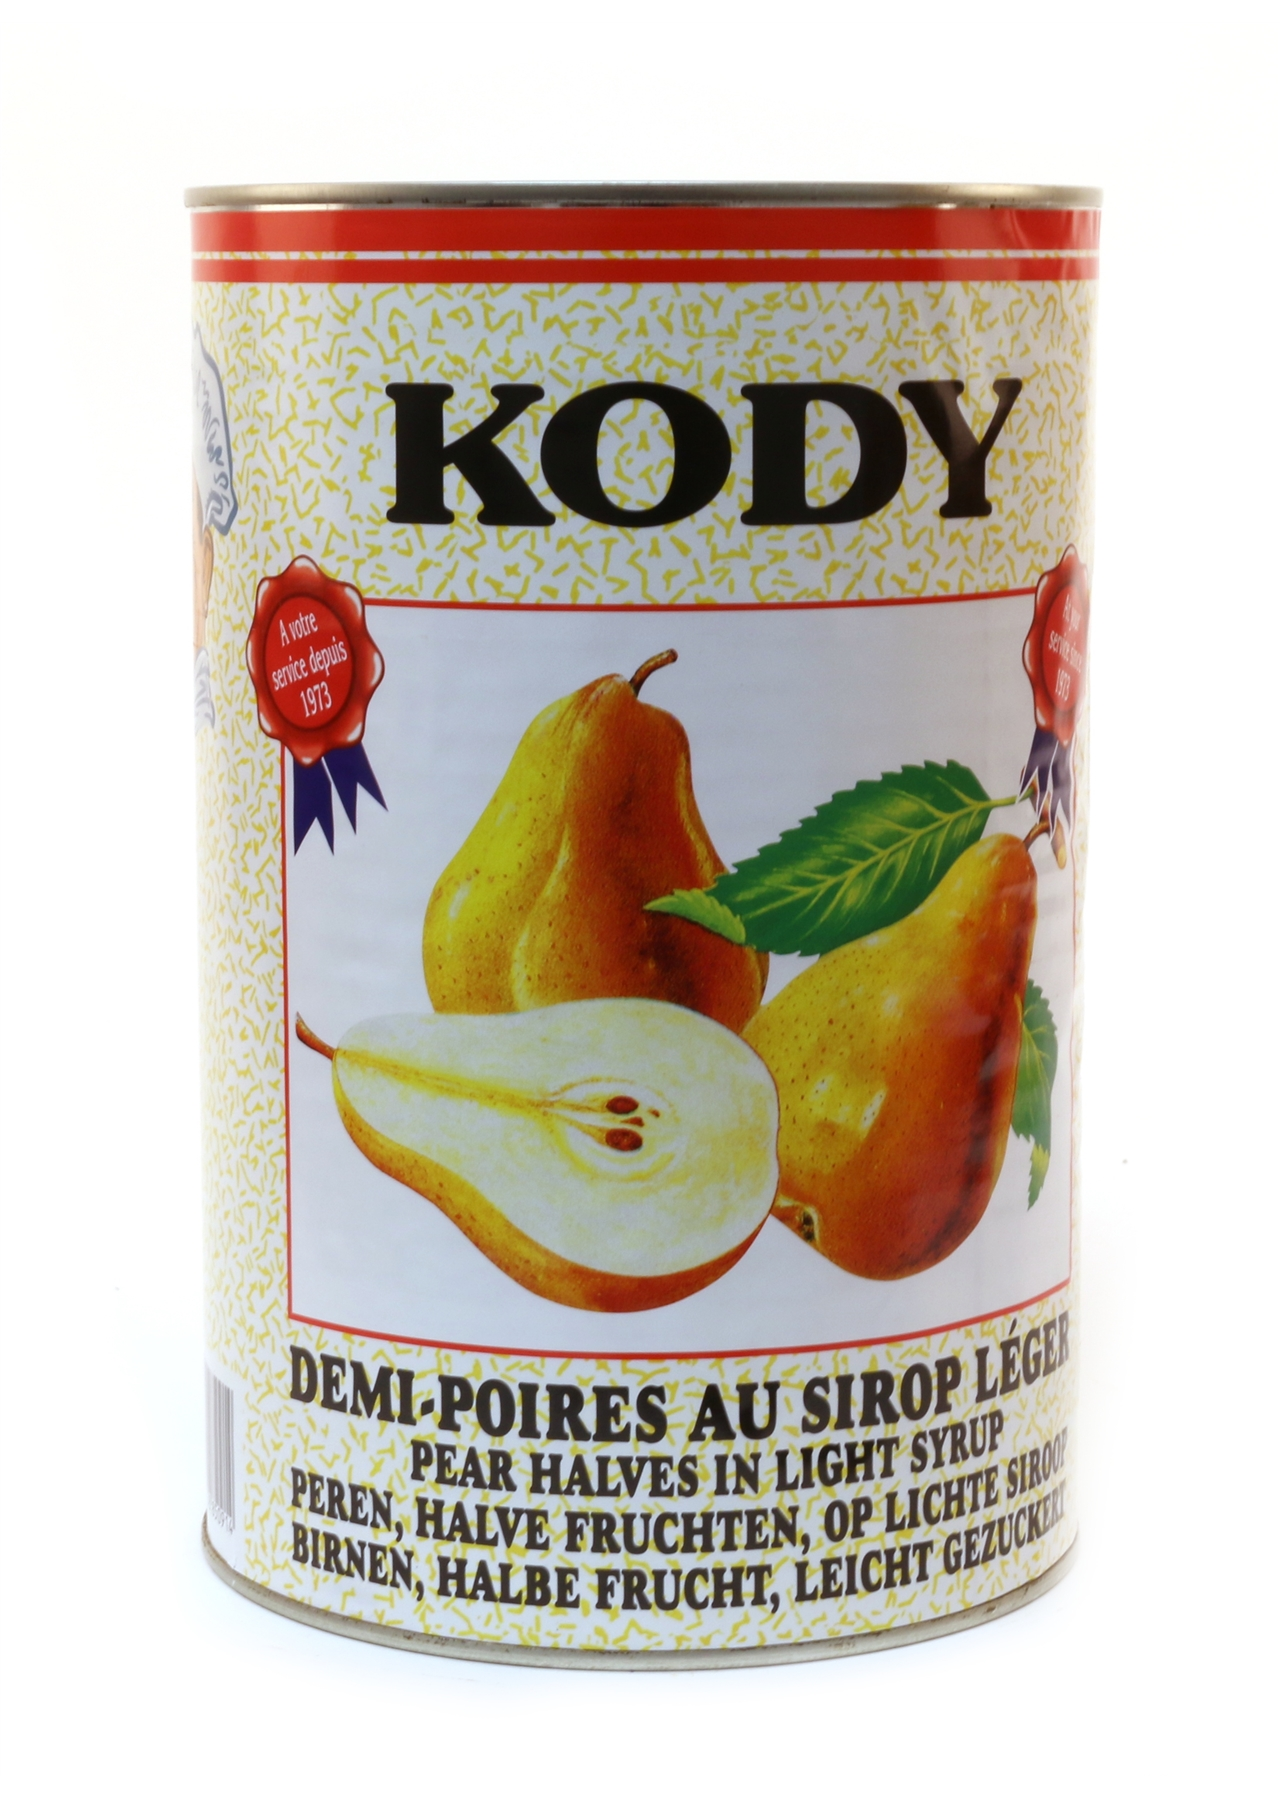 Pears in Light Syrup Kody 4.15kg